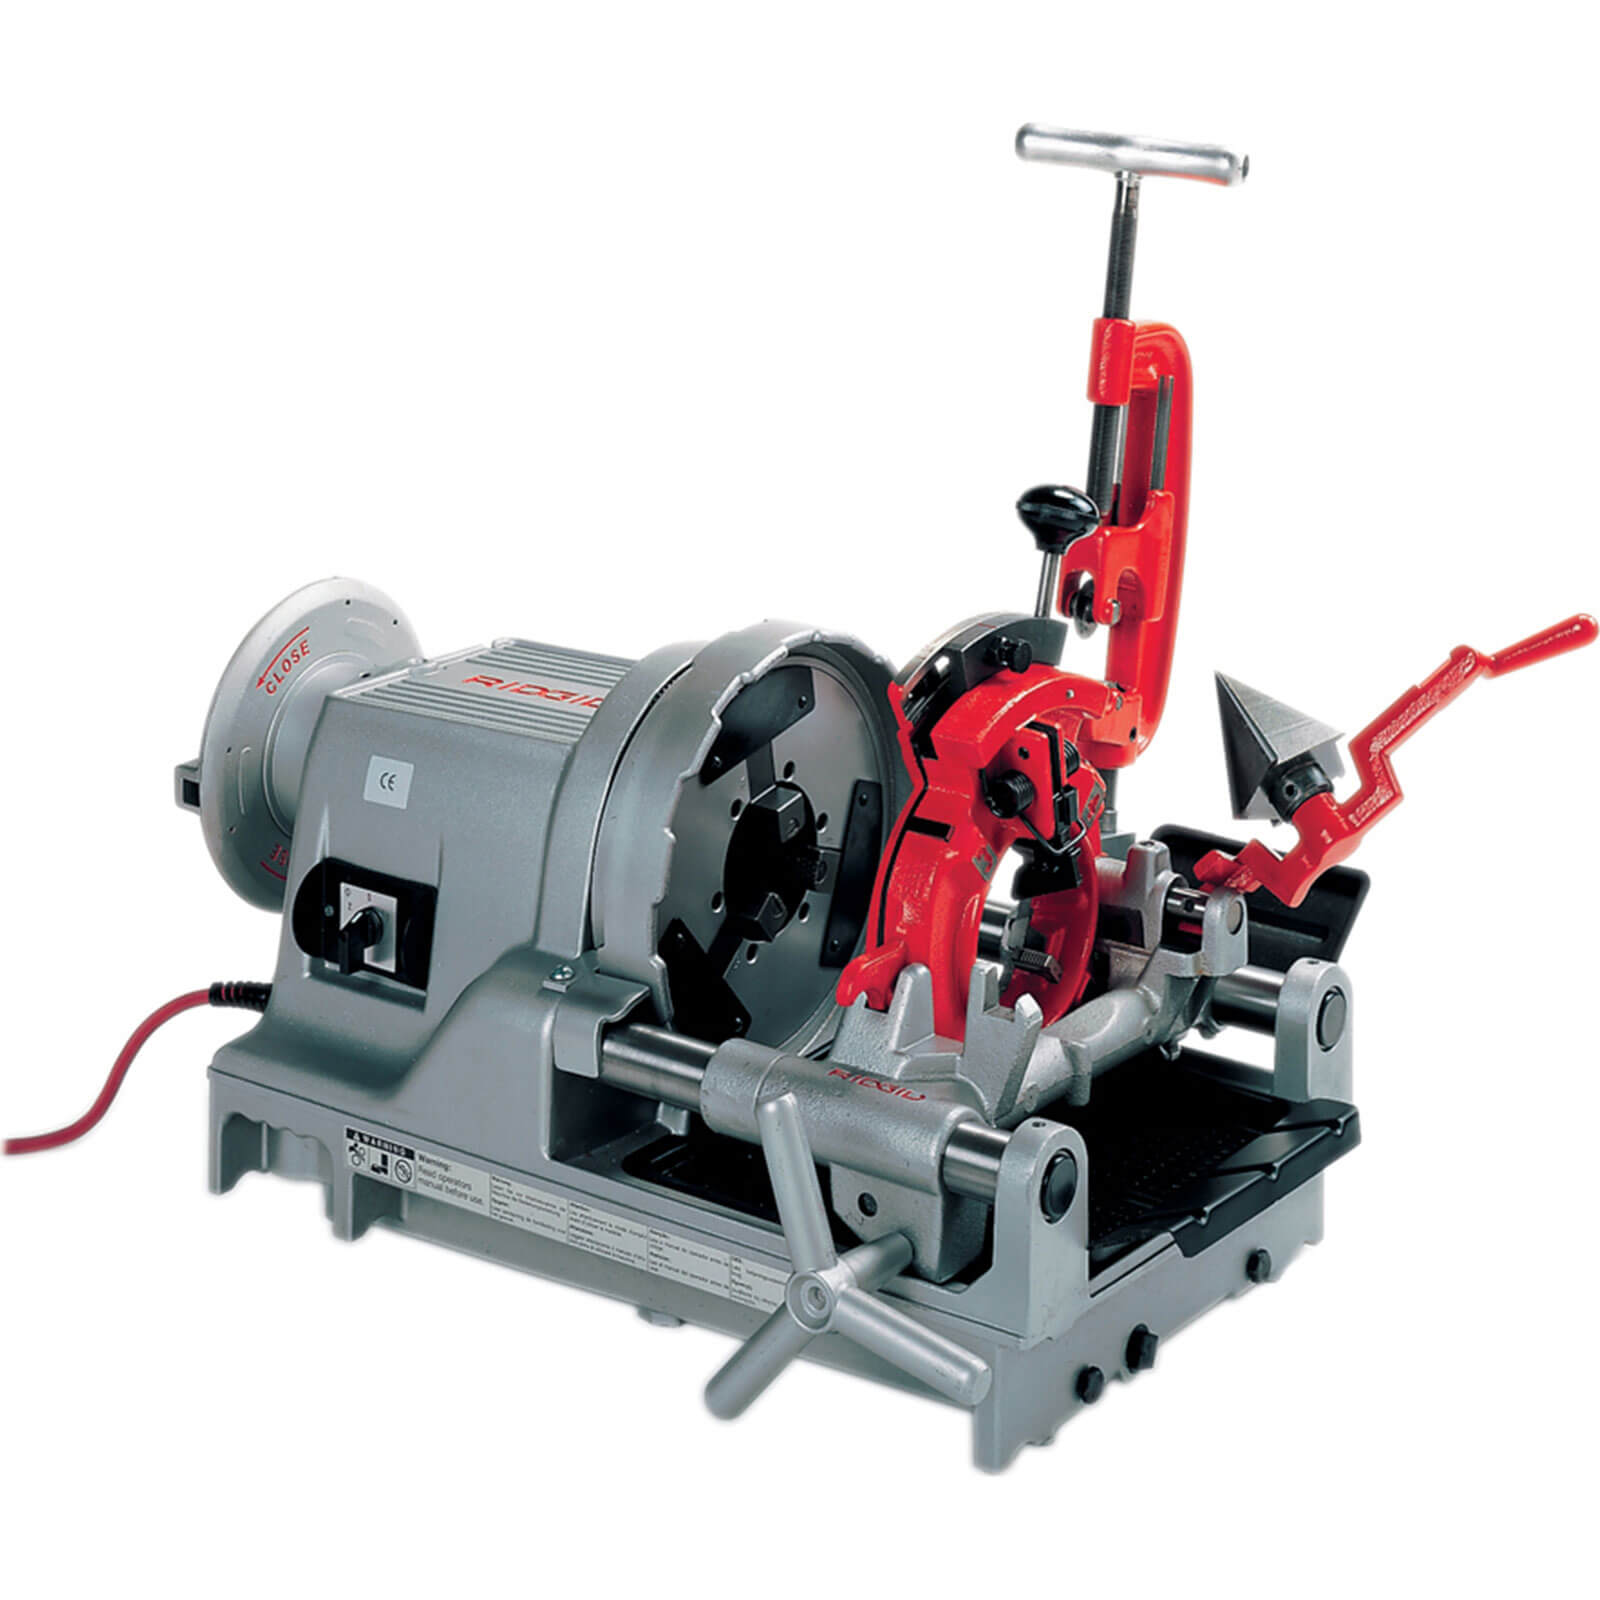 Image of Ridgid 1233 Pipe Threading Machine 110v